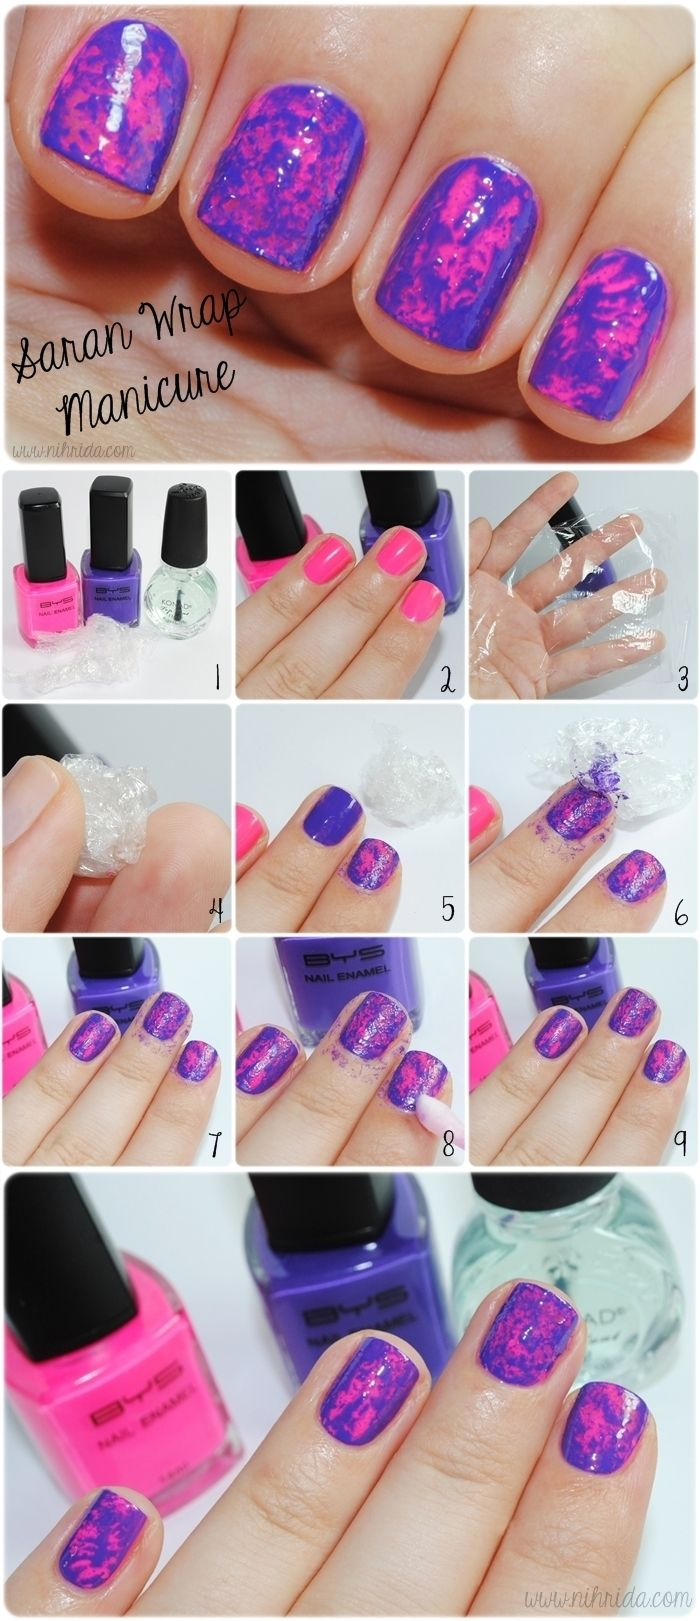 How To: Saran Wrap Manicure... interesting..... @Shawna Bergene Beeler